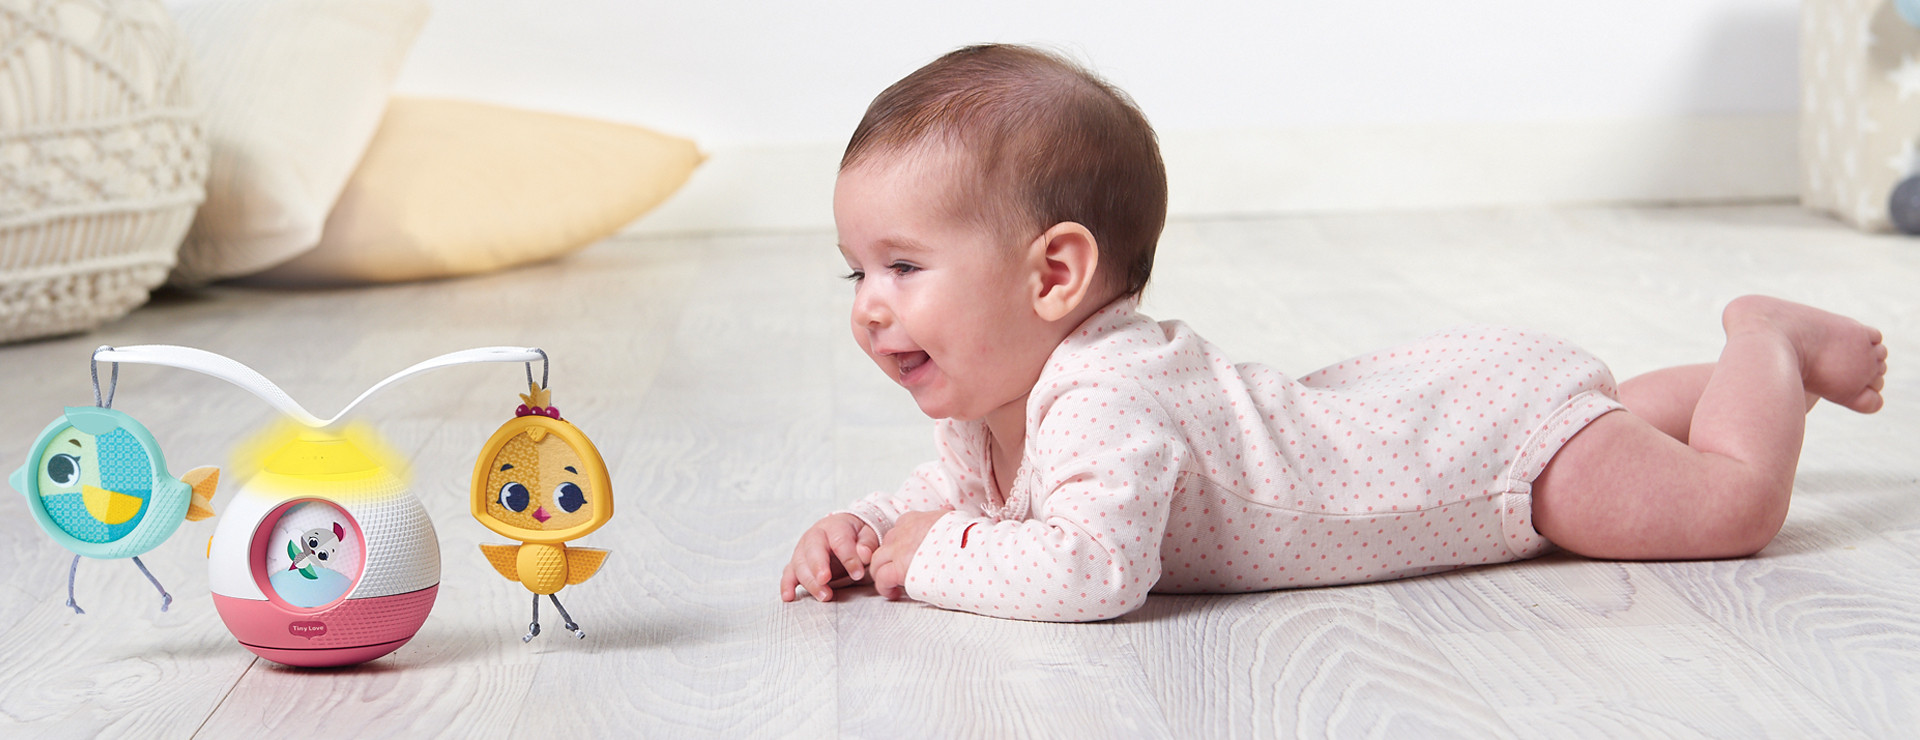 360° Rotating arms, music & lights for  fascinated baby